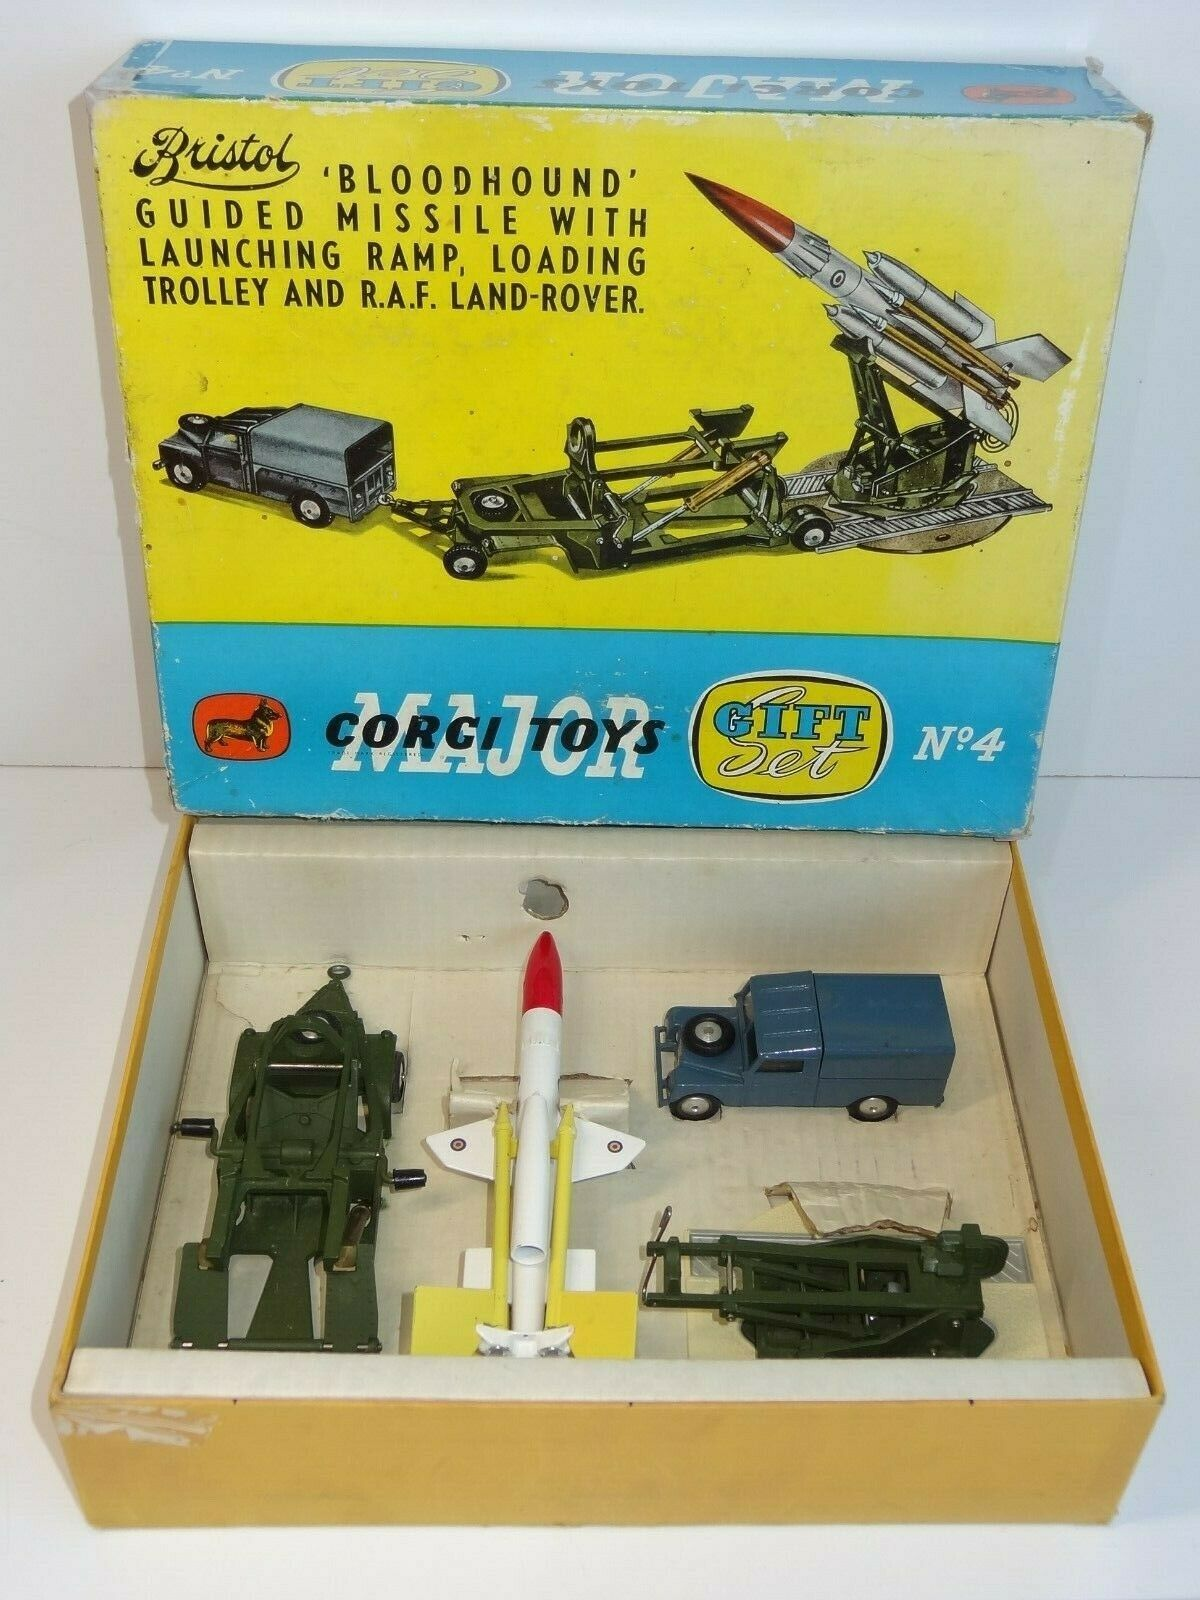 Corgi GS 4 BLOODHOUND GUIDED MISSILE GIFT SET (246)